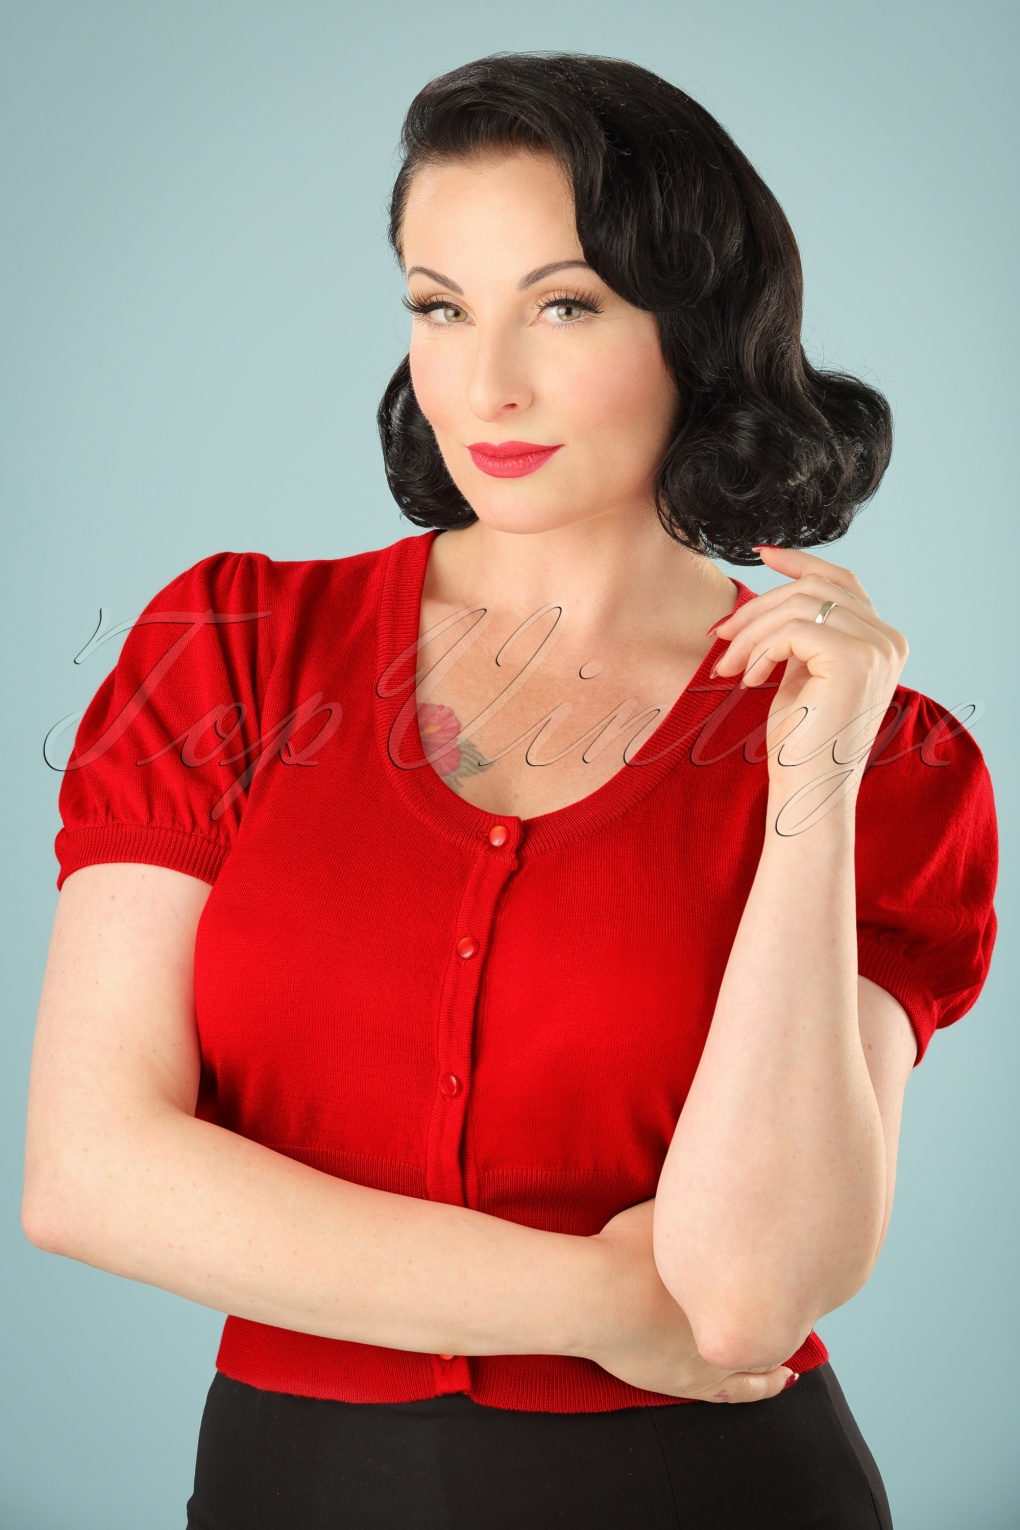 Vintage & Retro Shirts, Halter Tops, Blouses 40s Grace Cardigan in Red £15.79 AT vintagedancer.com